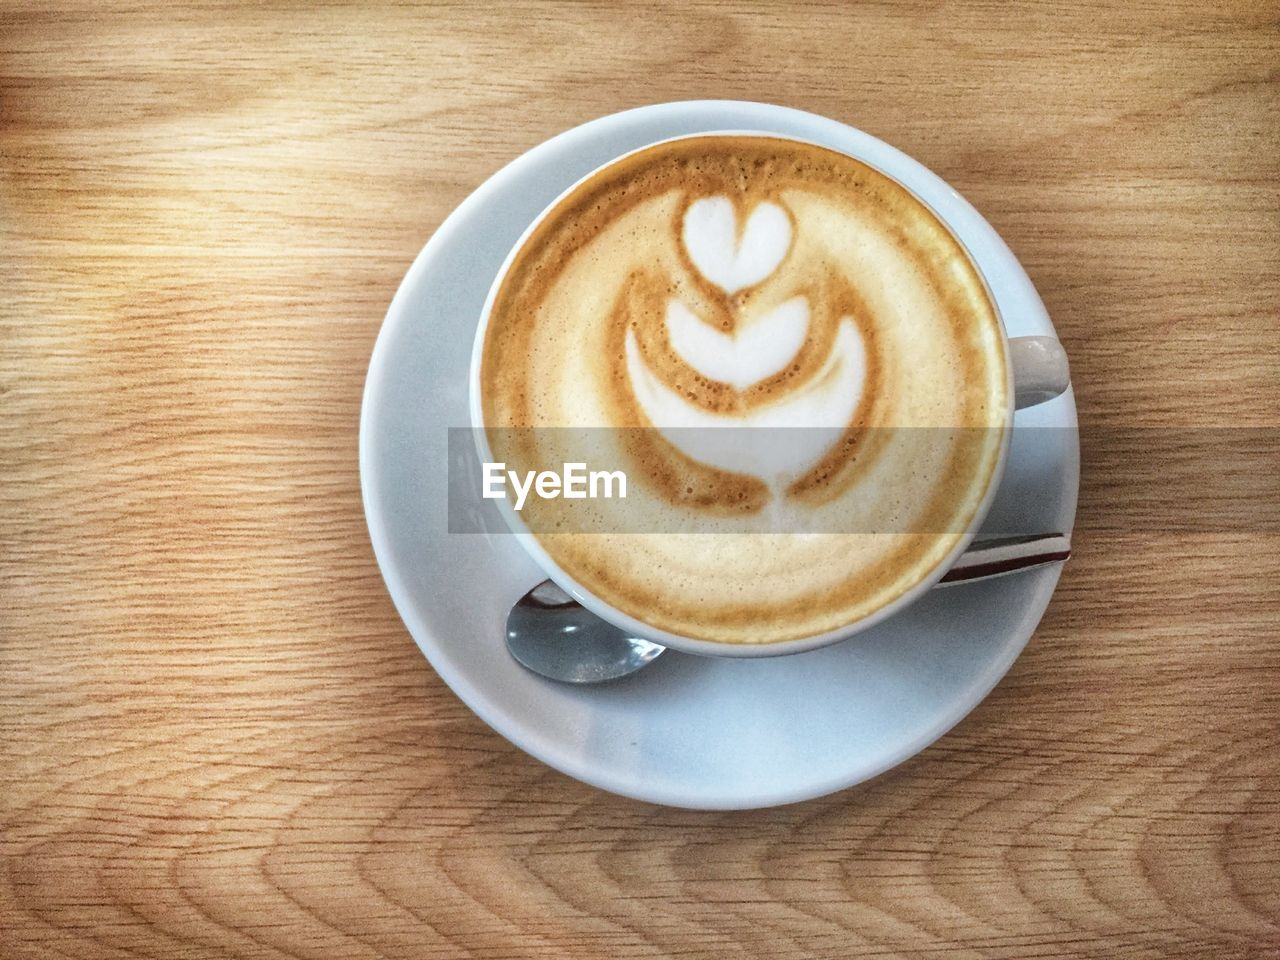 coffee - drink, coffee cup, coffee, food and drink, mug, cup, saucer, drink, table, still life, refreshment, cappuccino, frothy drink, creativity, hot drink, crockery, froth art, freshness, indoors, close-up, no people, latte, breakfast, froth